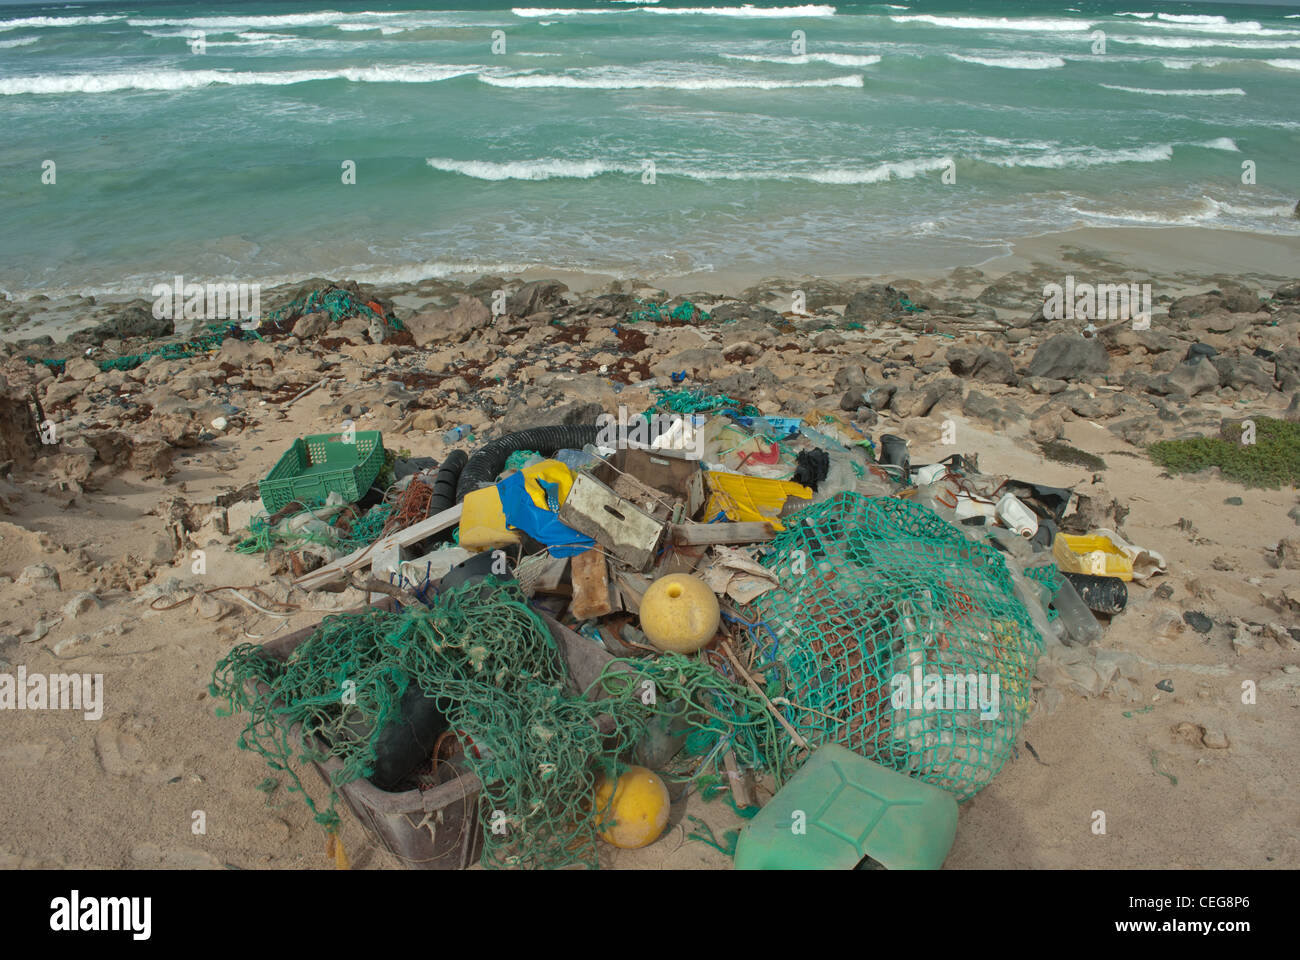 litter washed up on beach Stock Photo